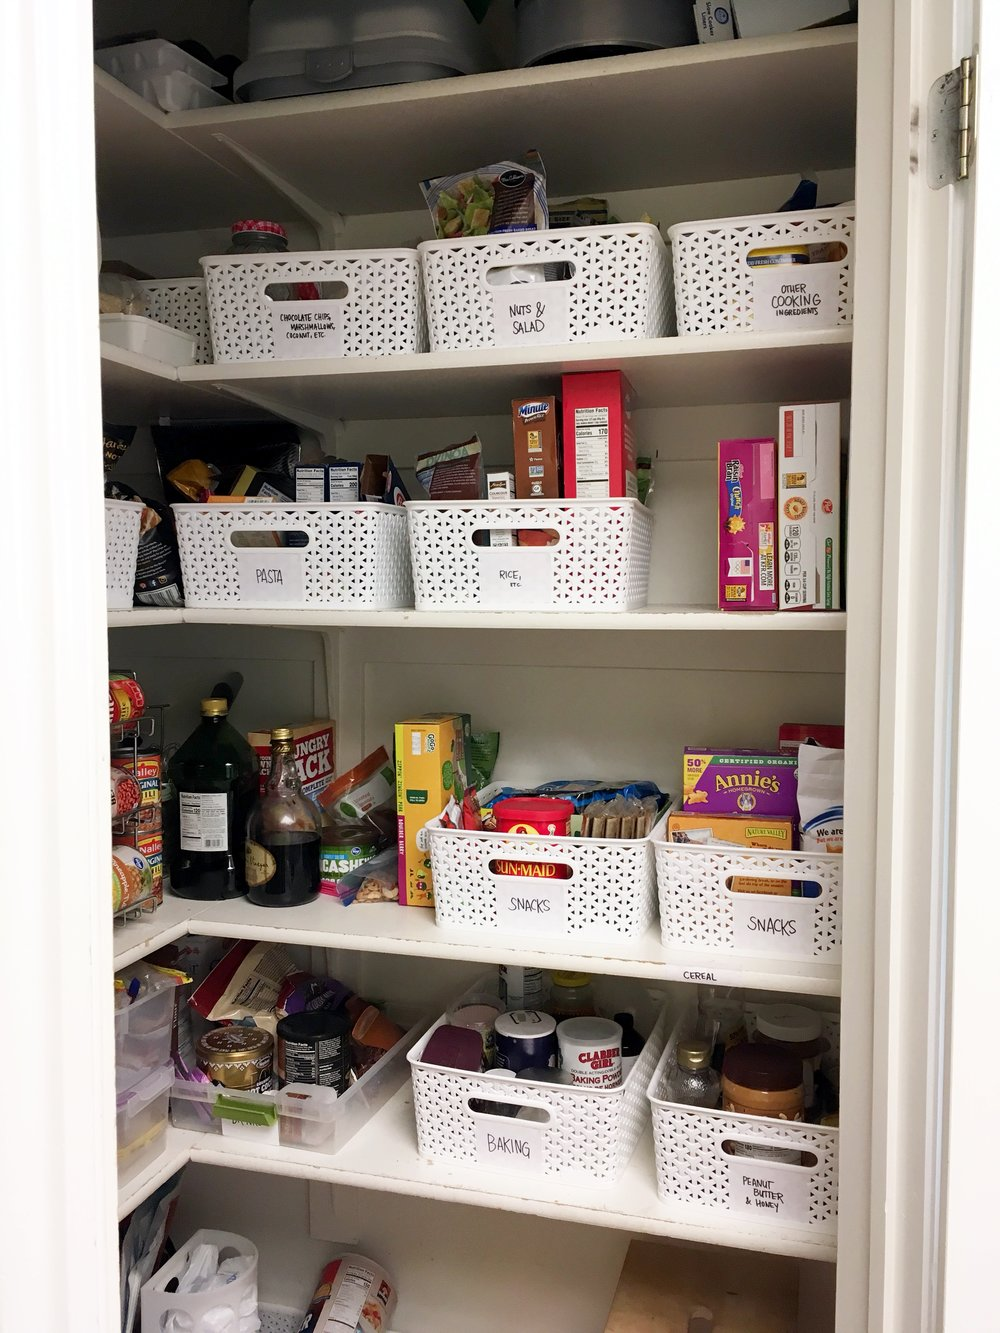 Kristin's nice and organized pantry! As you can see having some kind of bins is key!